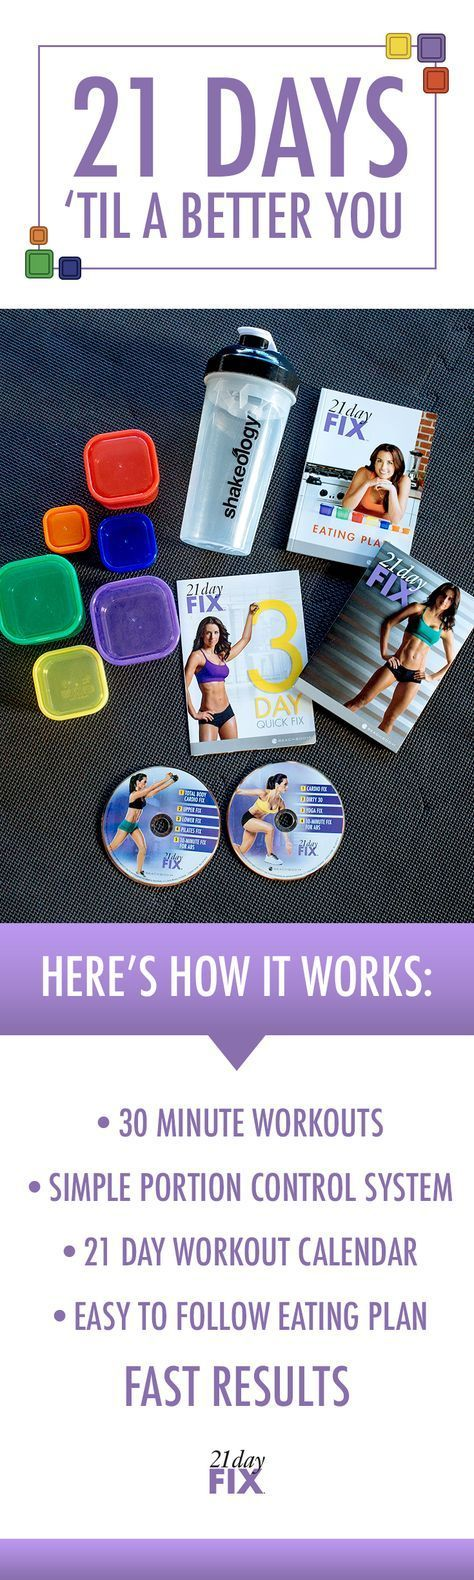 Want to look and feel your best in 21 days? With 21 Day Fix®️️, our healthy eating tips, plus short 30-minute workouts are everything you need to get on track!